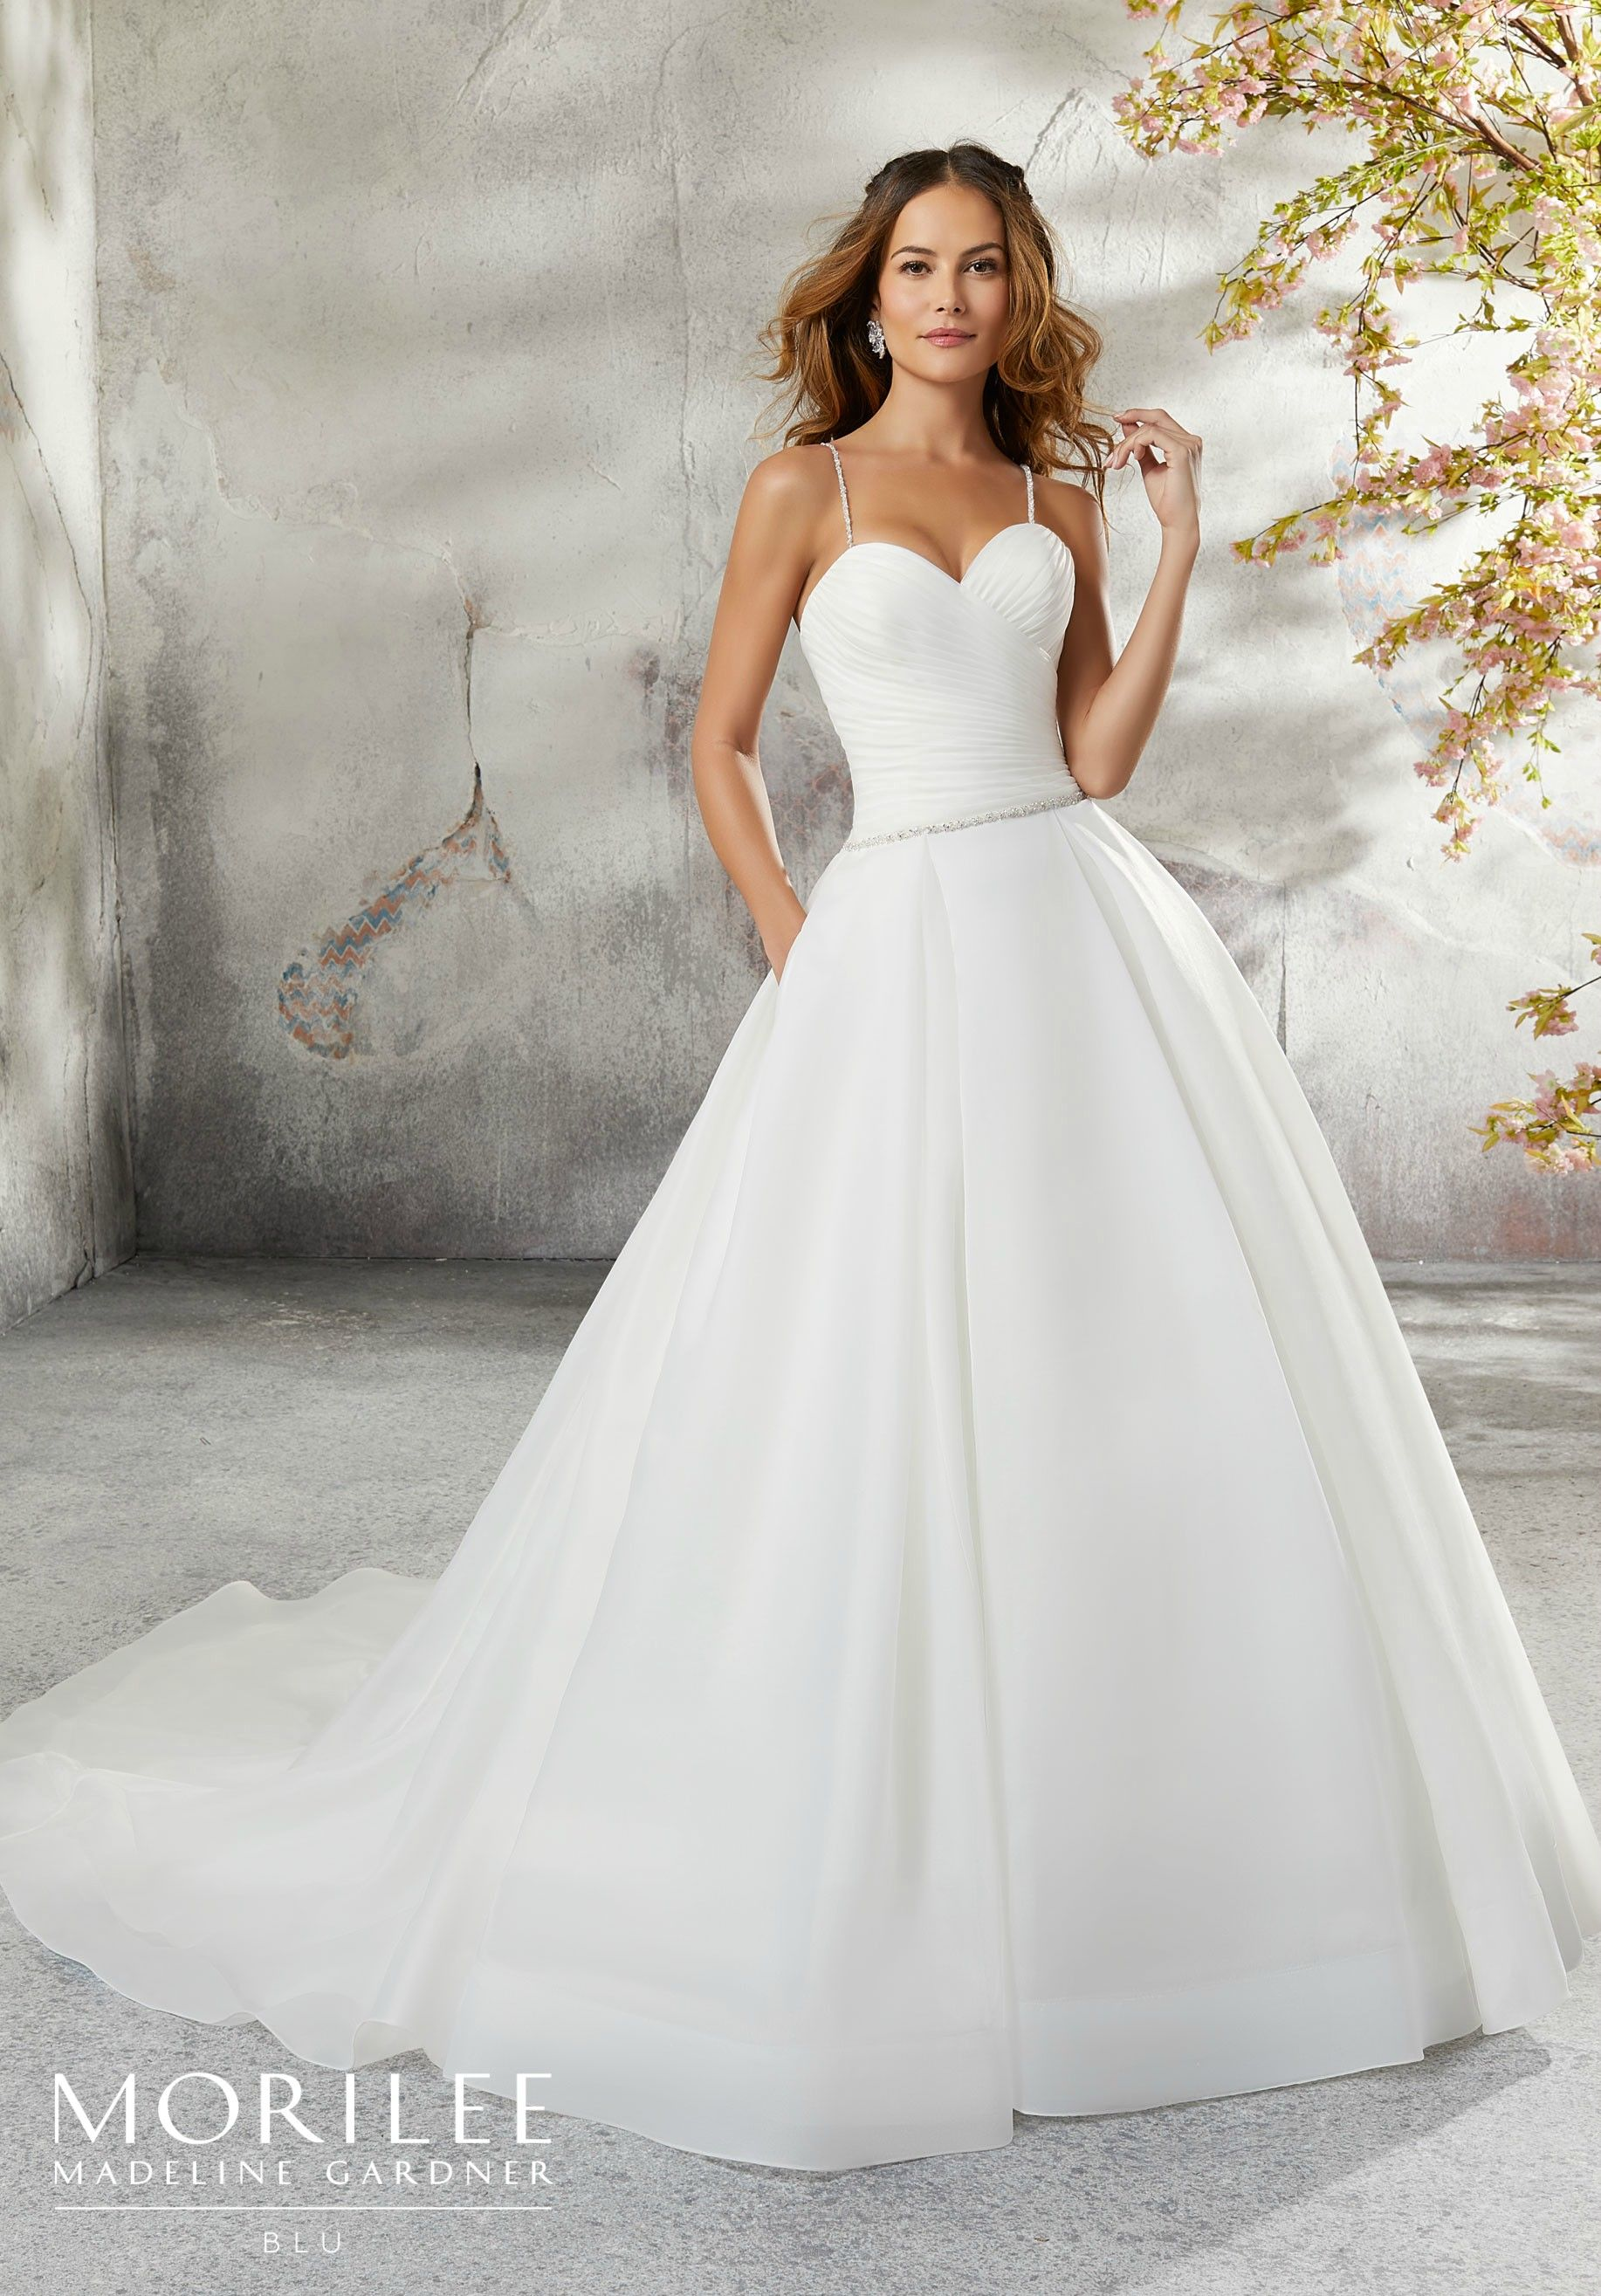 Mori lee madeline gardner wedding dress  Laurissa Wedding Dress  OUR WEDDING  Pinterest  Box pleat